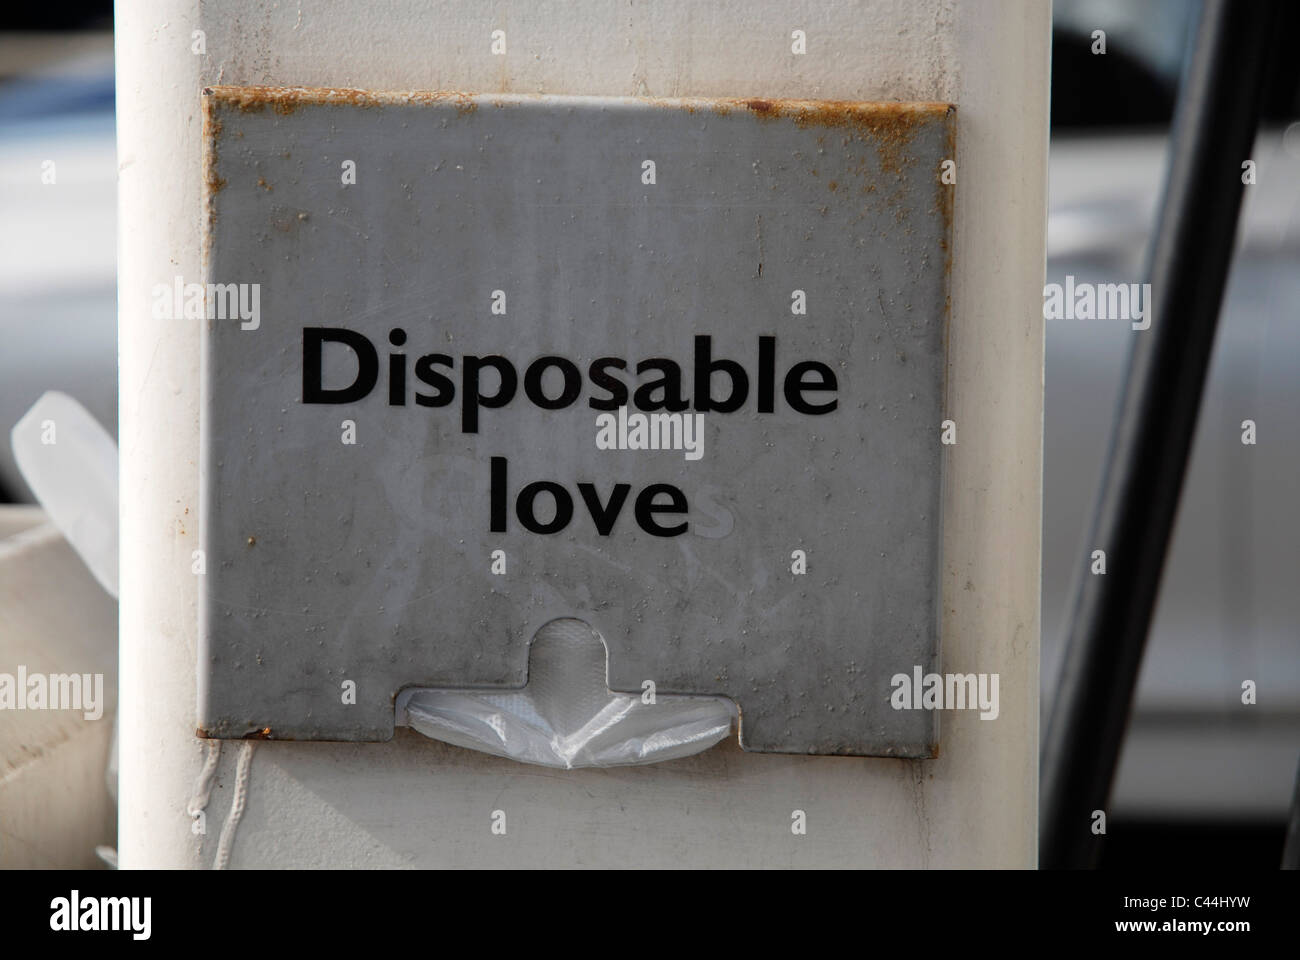 A disposable gloves sign on a diesel pump altered to read 'Disposable love'. - Stock Image